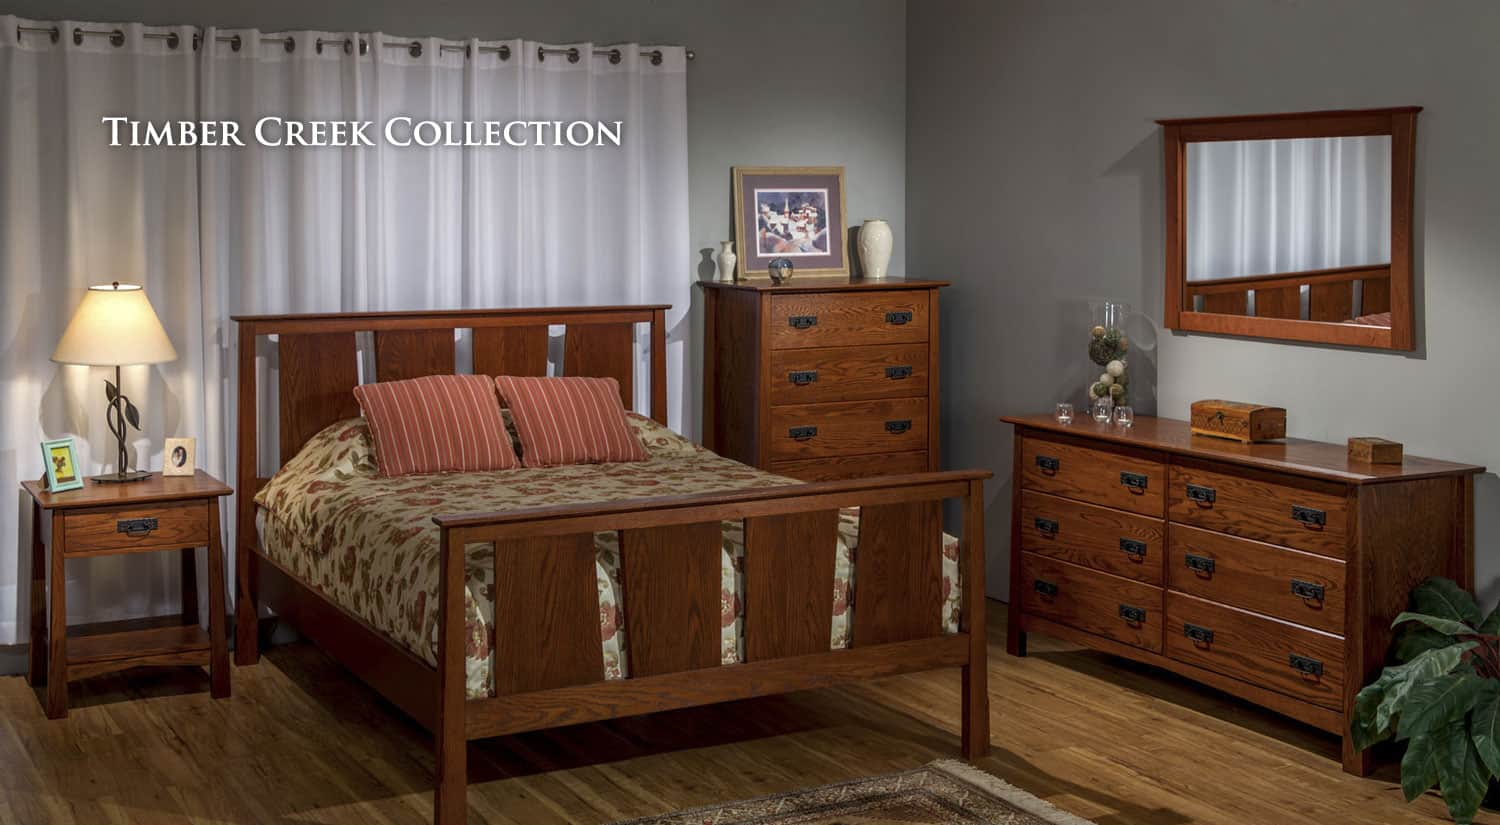 Solid Wood Furniture   Bedroom Furniture  Cherry Furniture   Vermont Made  Furniture   Made in USA. Solid Wood Furniture   Bedroom Furniture  Cherry Furniture